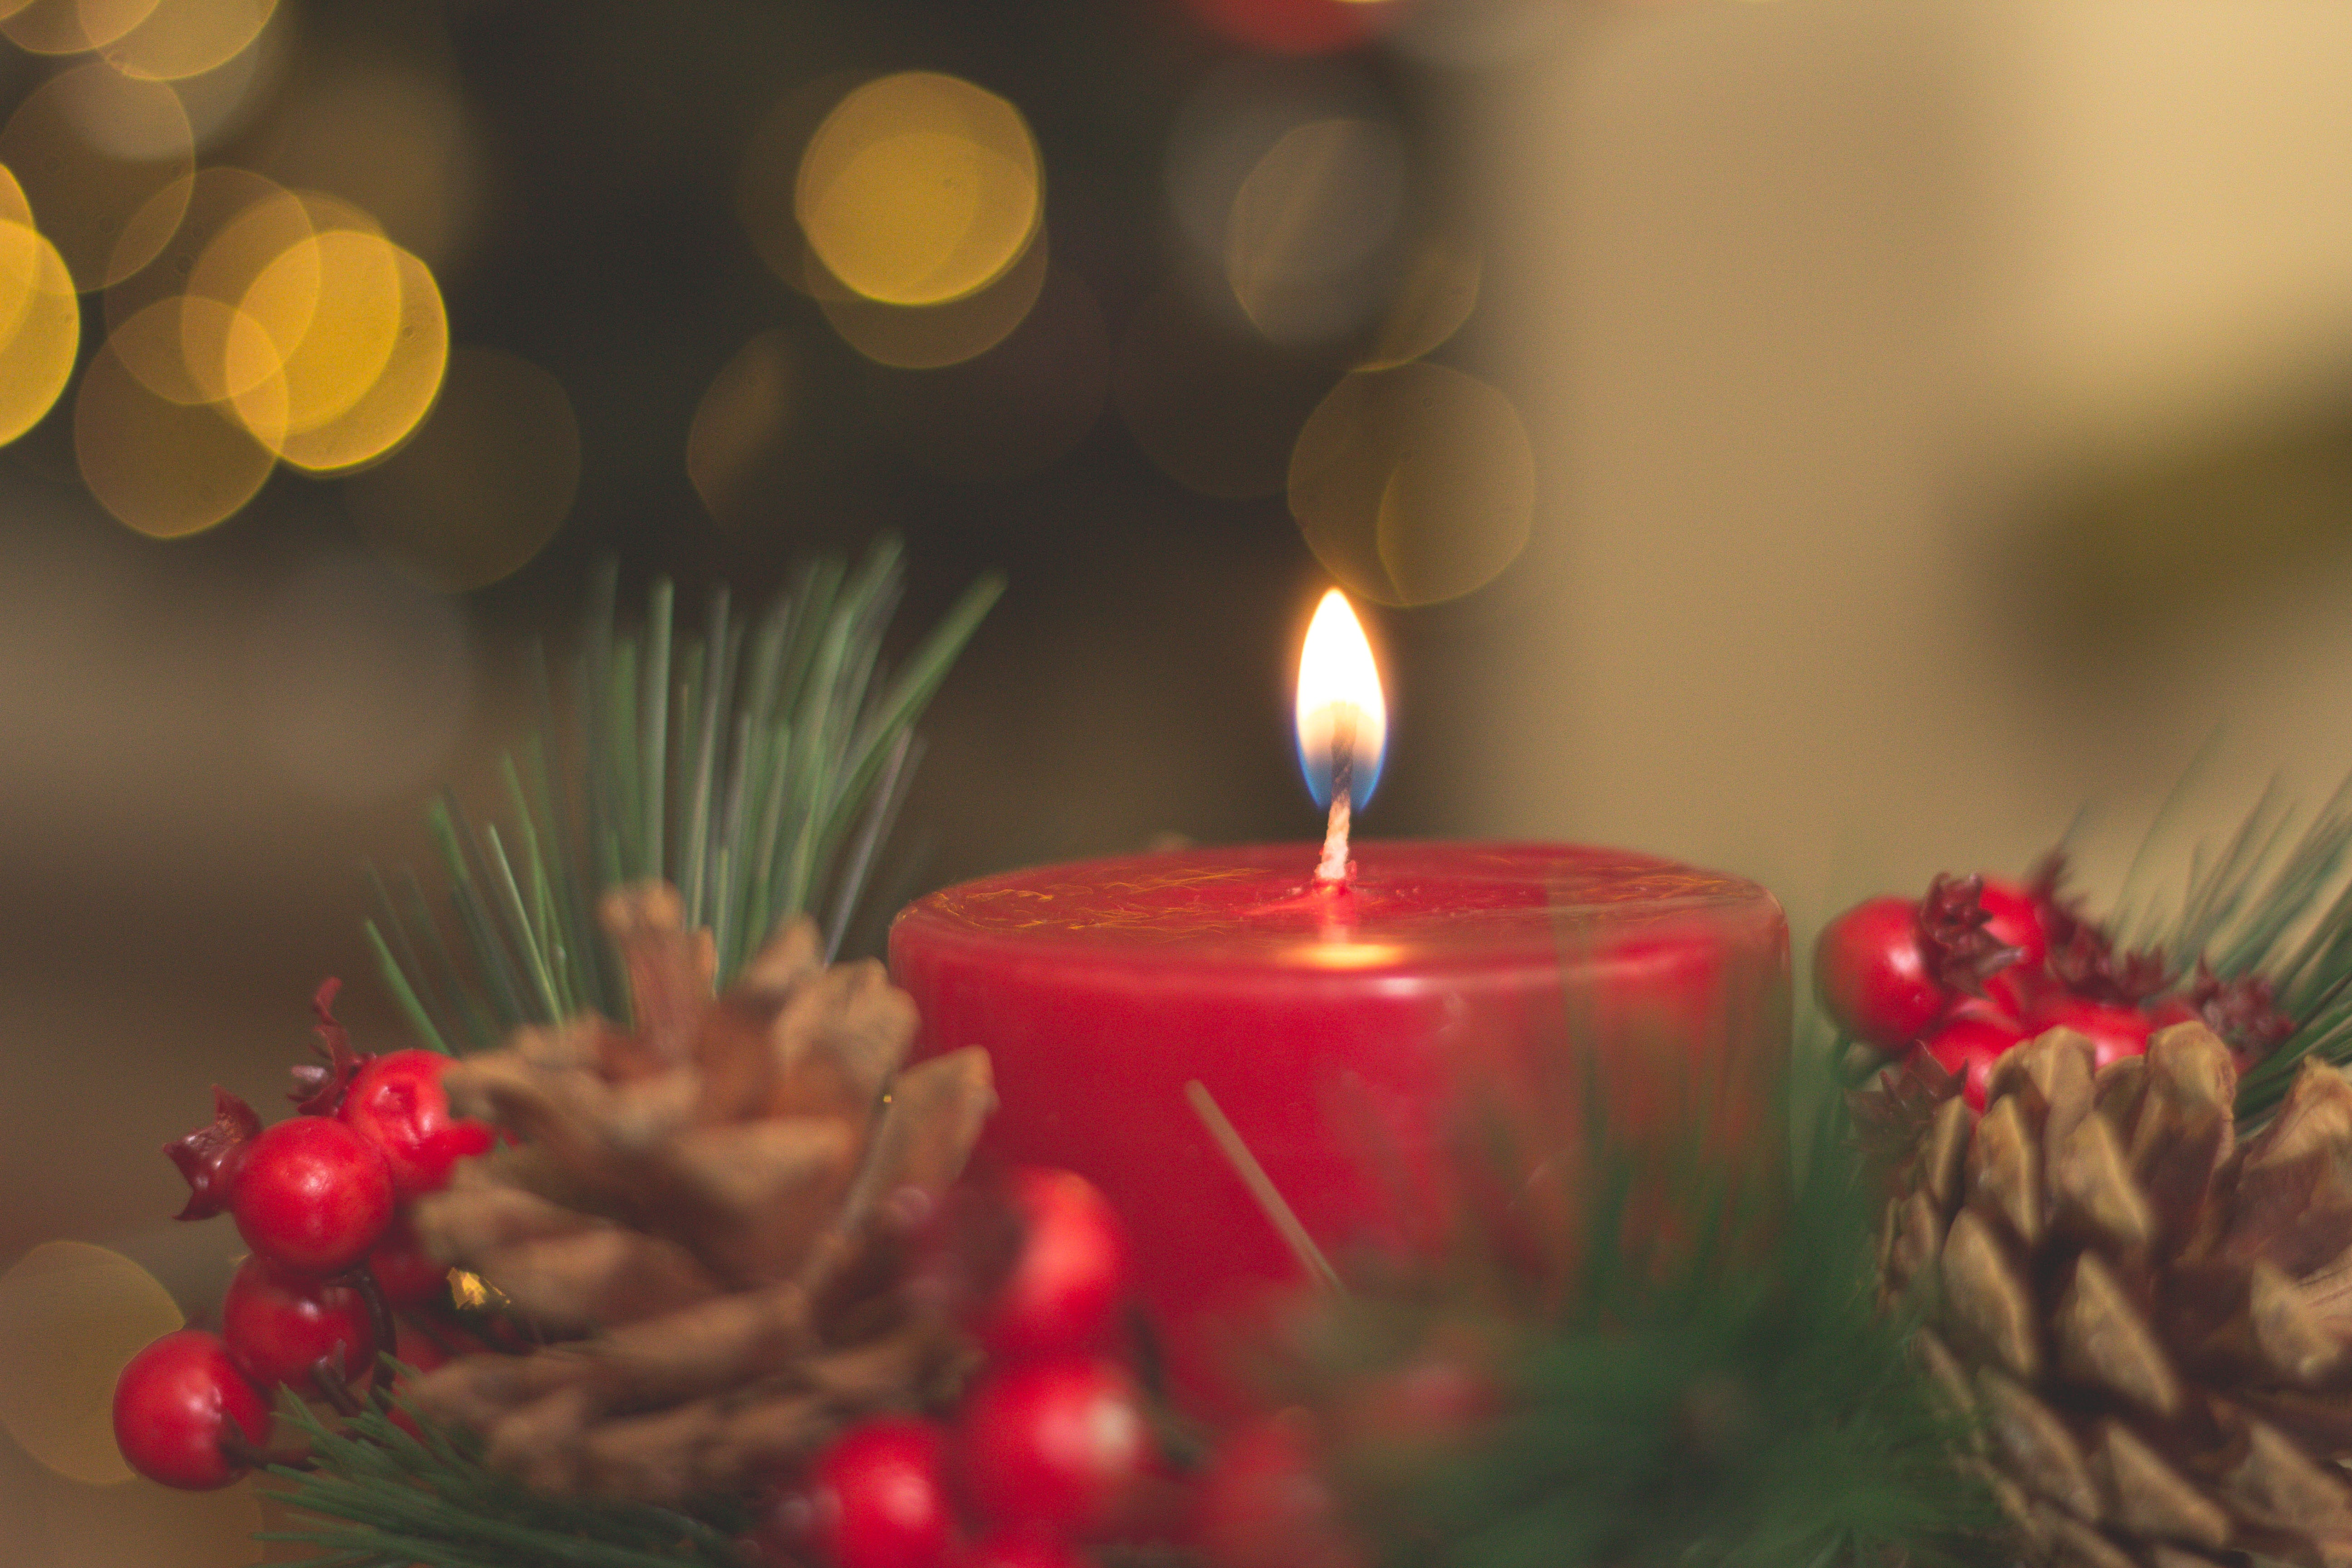 Red Lighted Candle, Advent, Decor, Pine cones, Light, HQ Photo